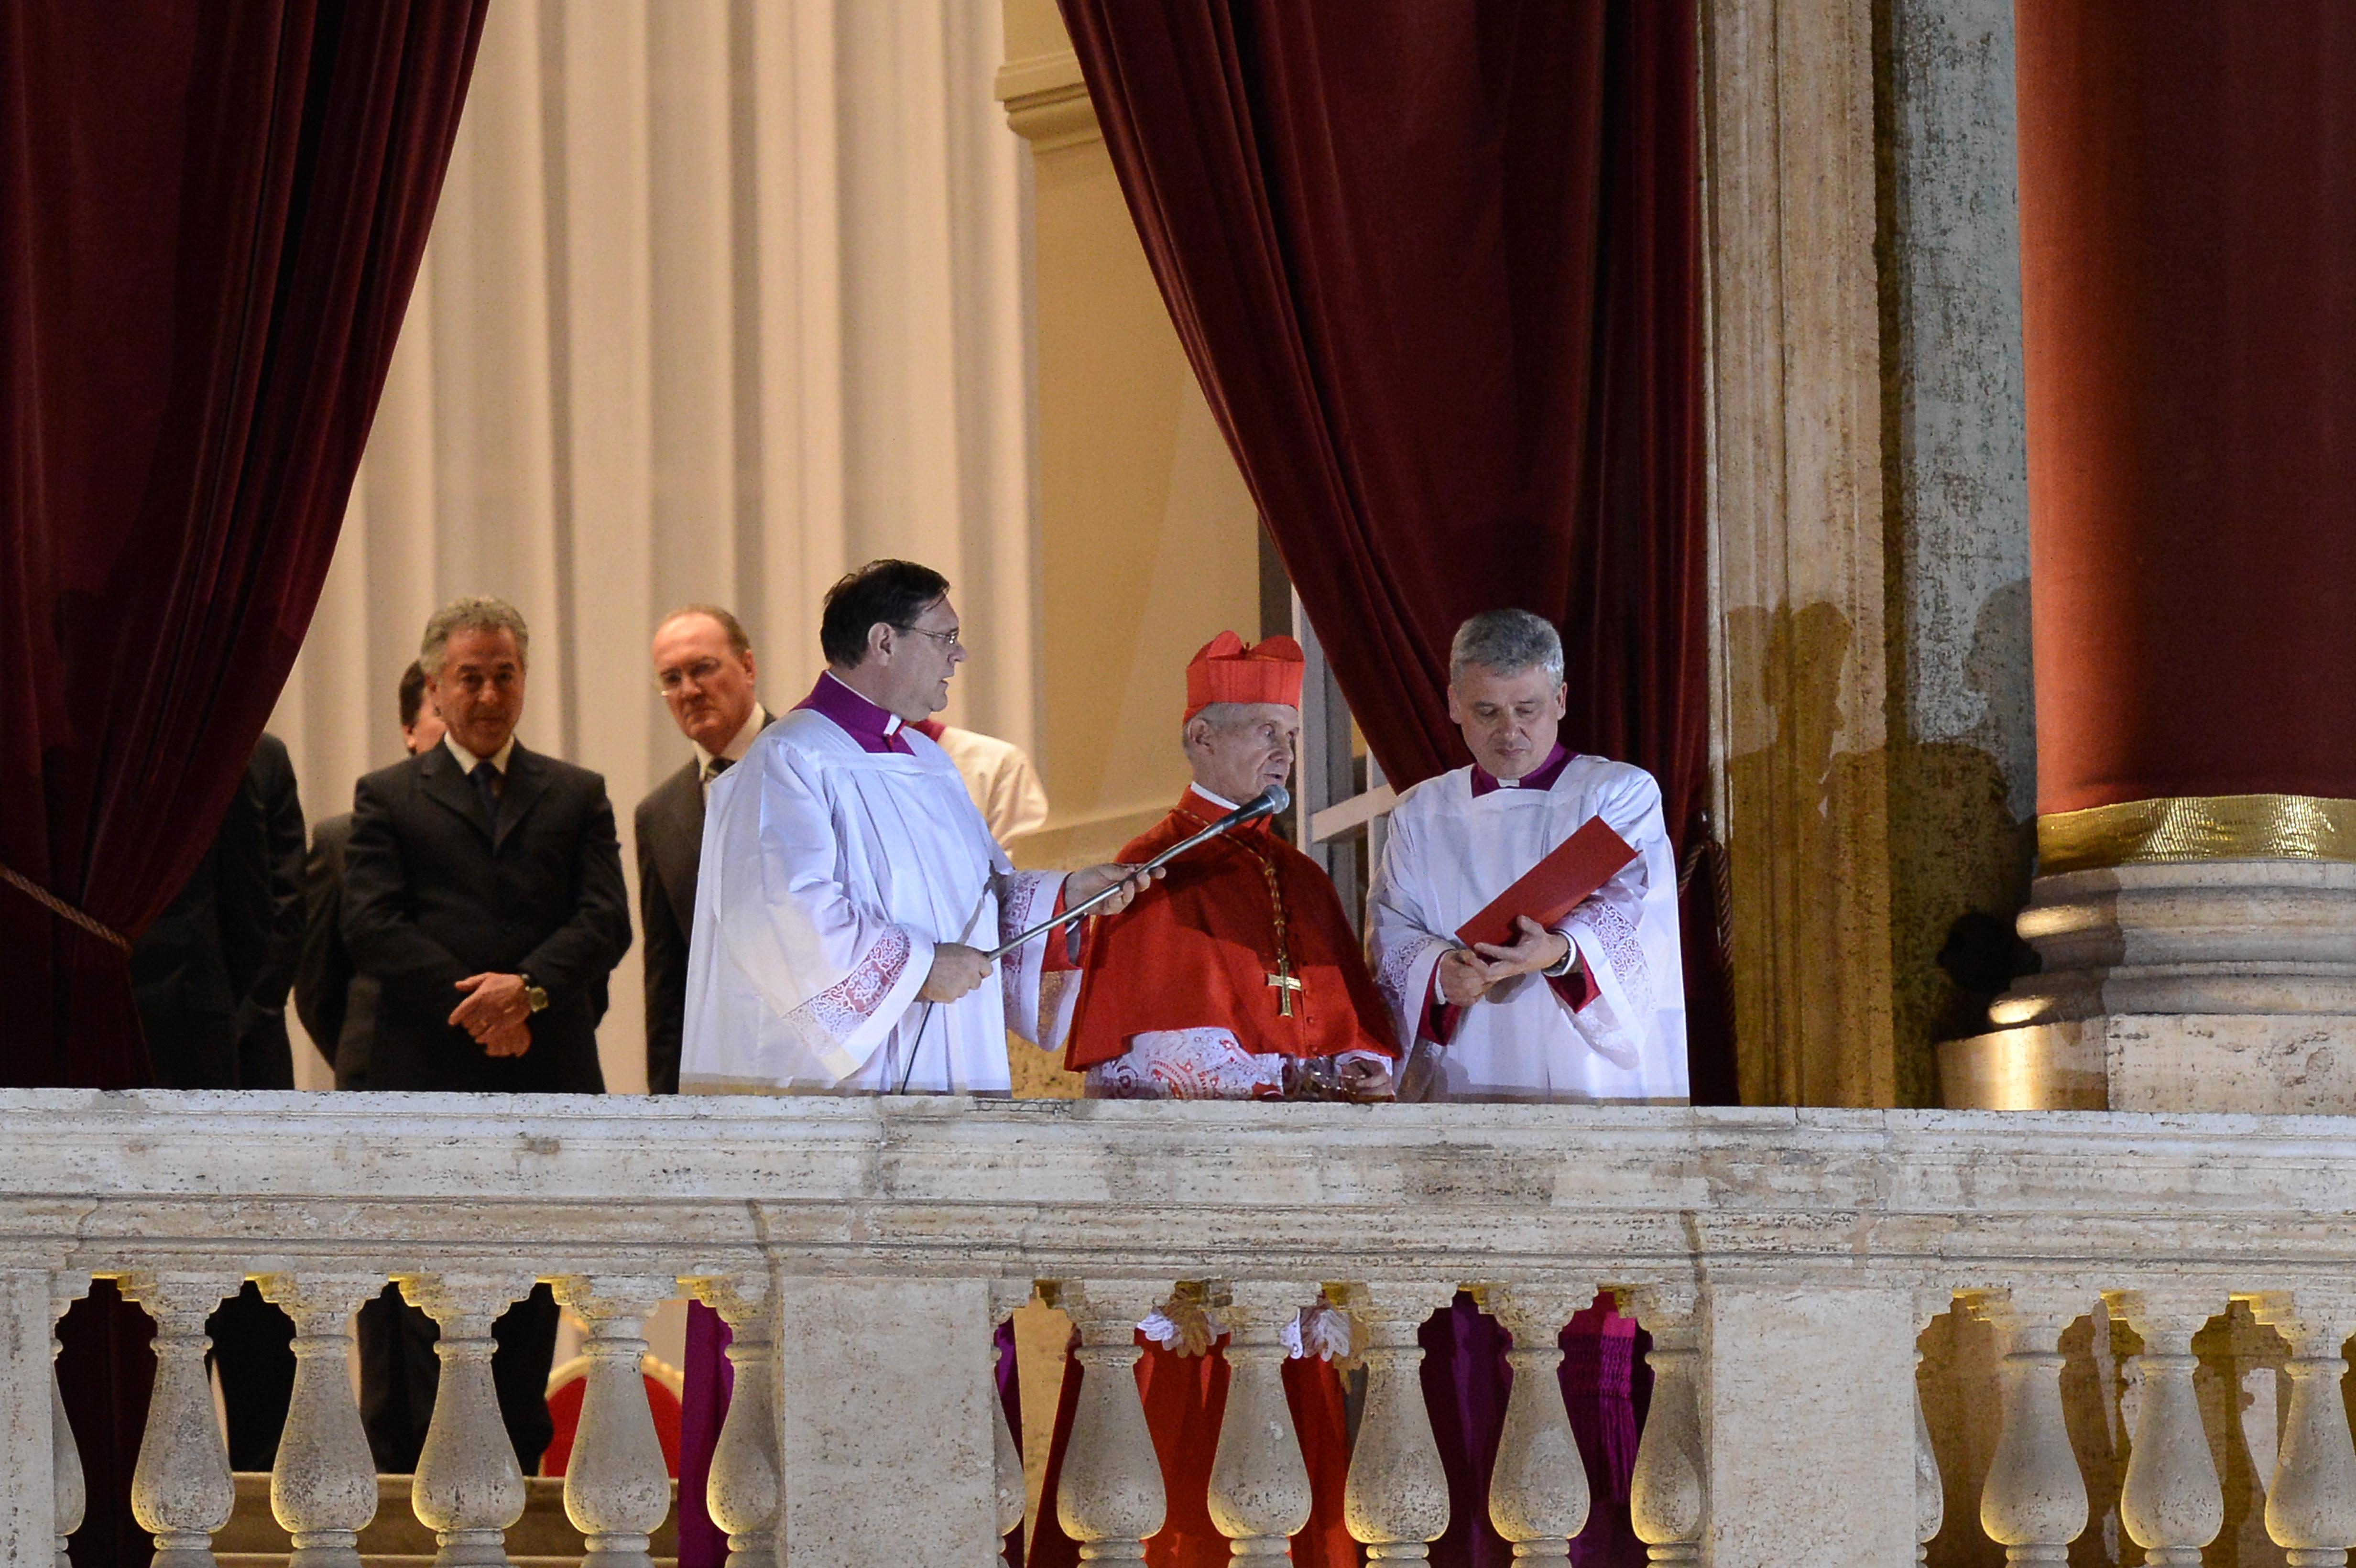 French proto-deacon cardinal Jean-Louis Tauran (center) announces the name of the new pope, Argentinian cardinal Jorge Mario Bergoglio on March 13, 2013, from the balcony of St Peter's basilica at the Vatican.